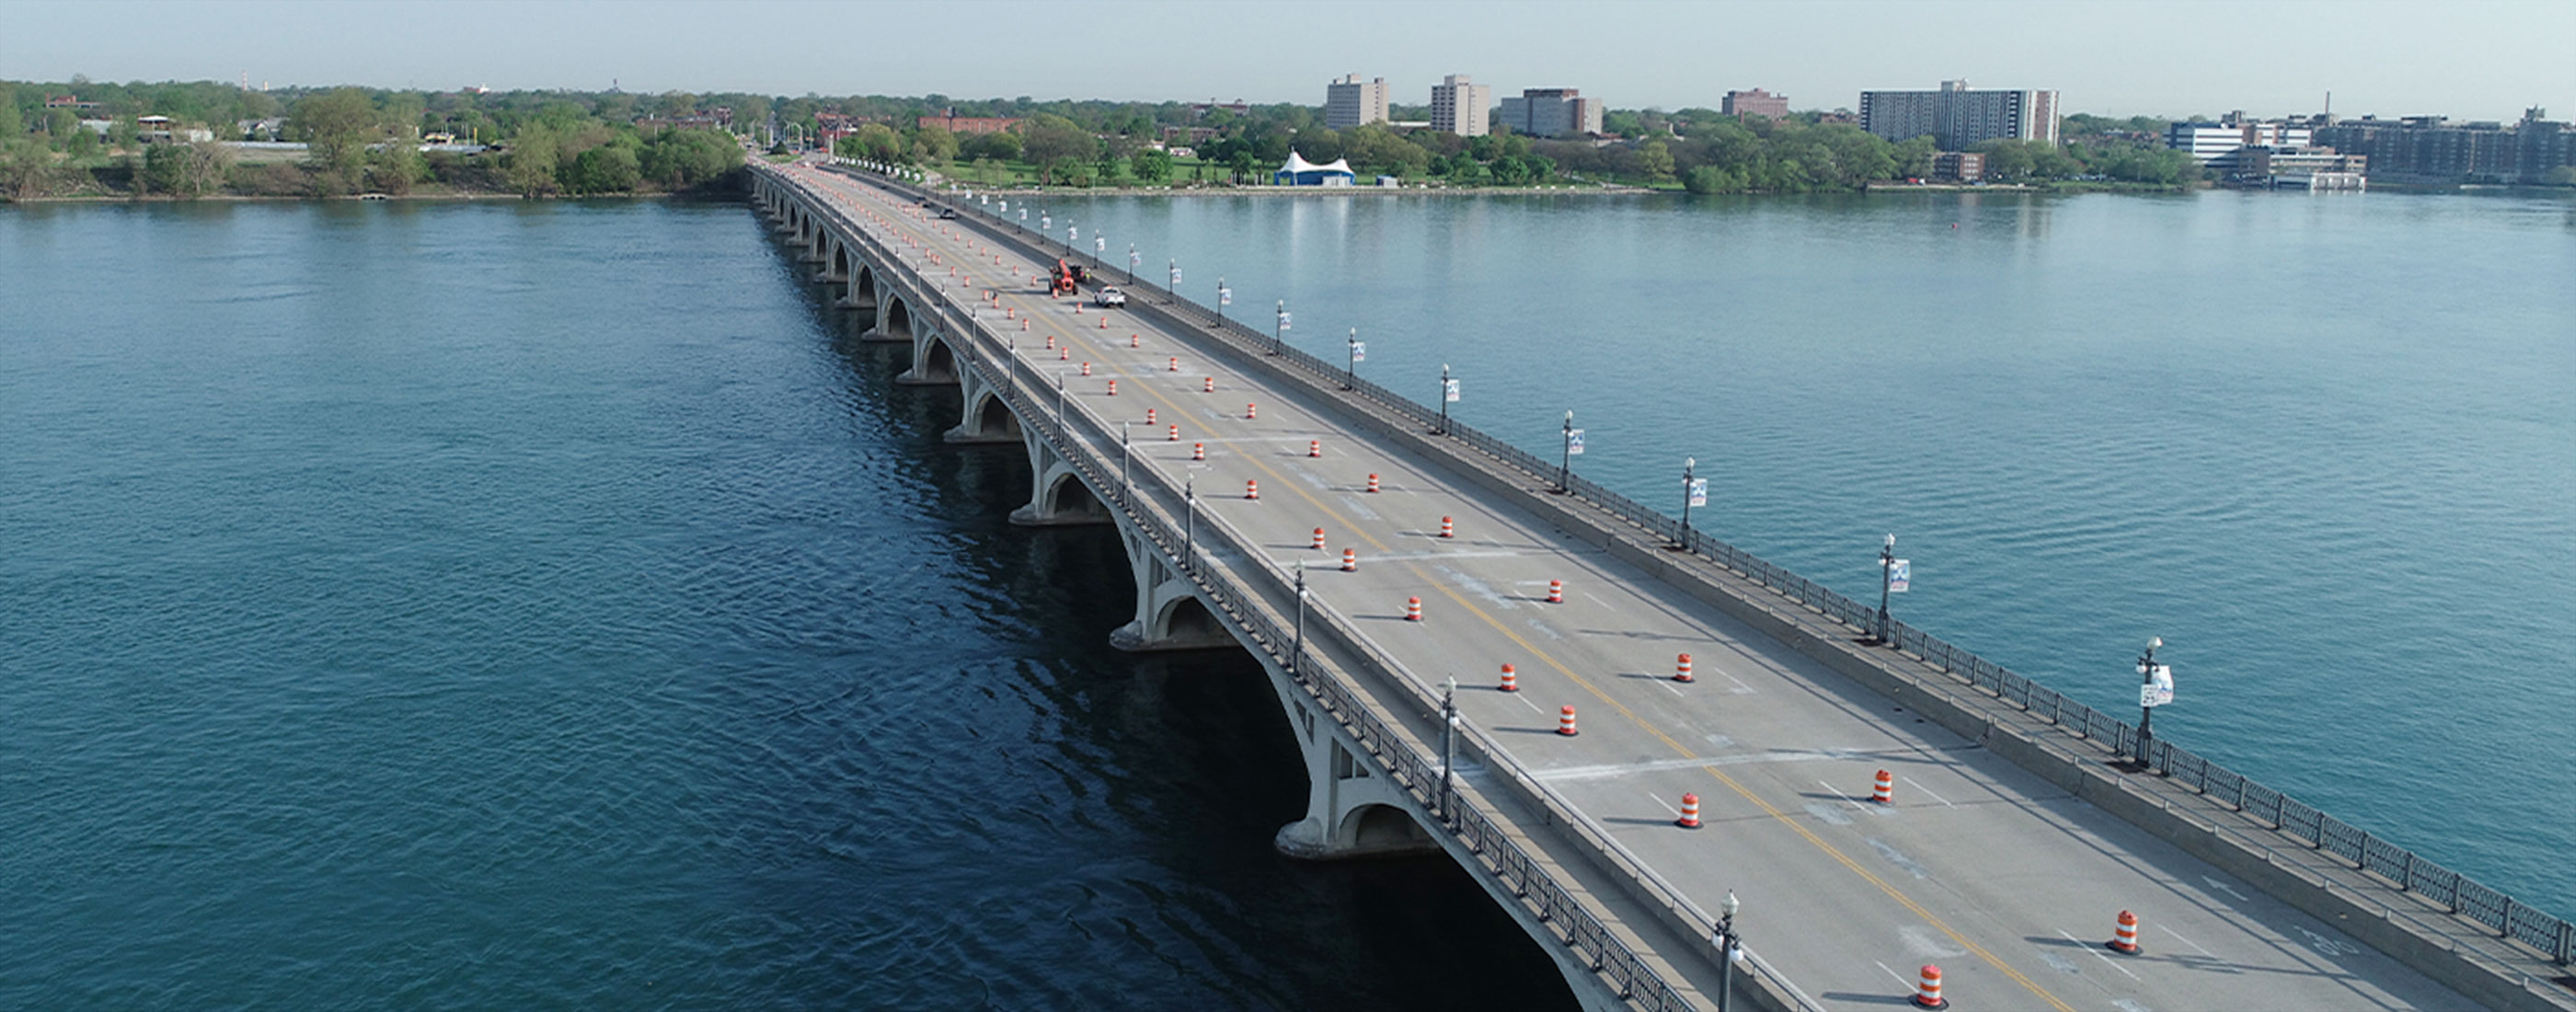 Traffic cones set up as OHM Advisors helps MDOT preserve the Douglas A. MacArthur Bridge.